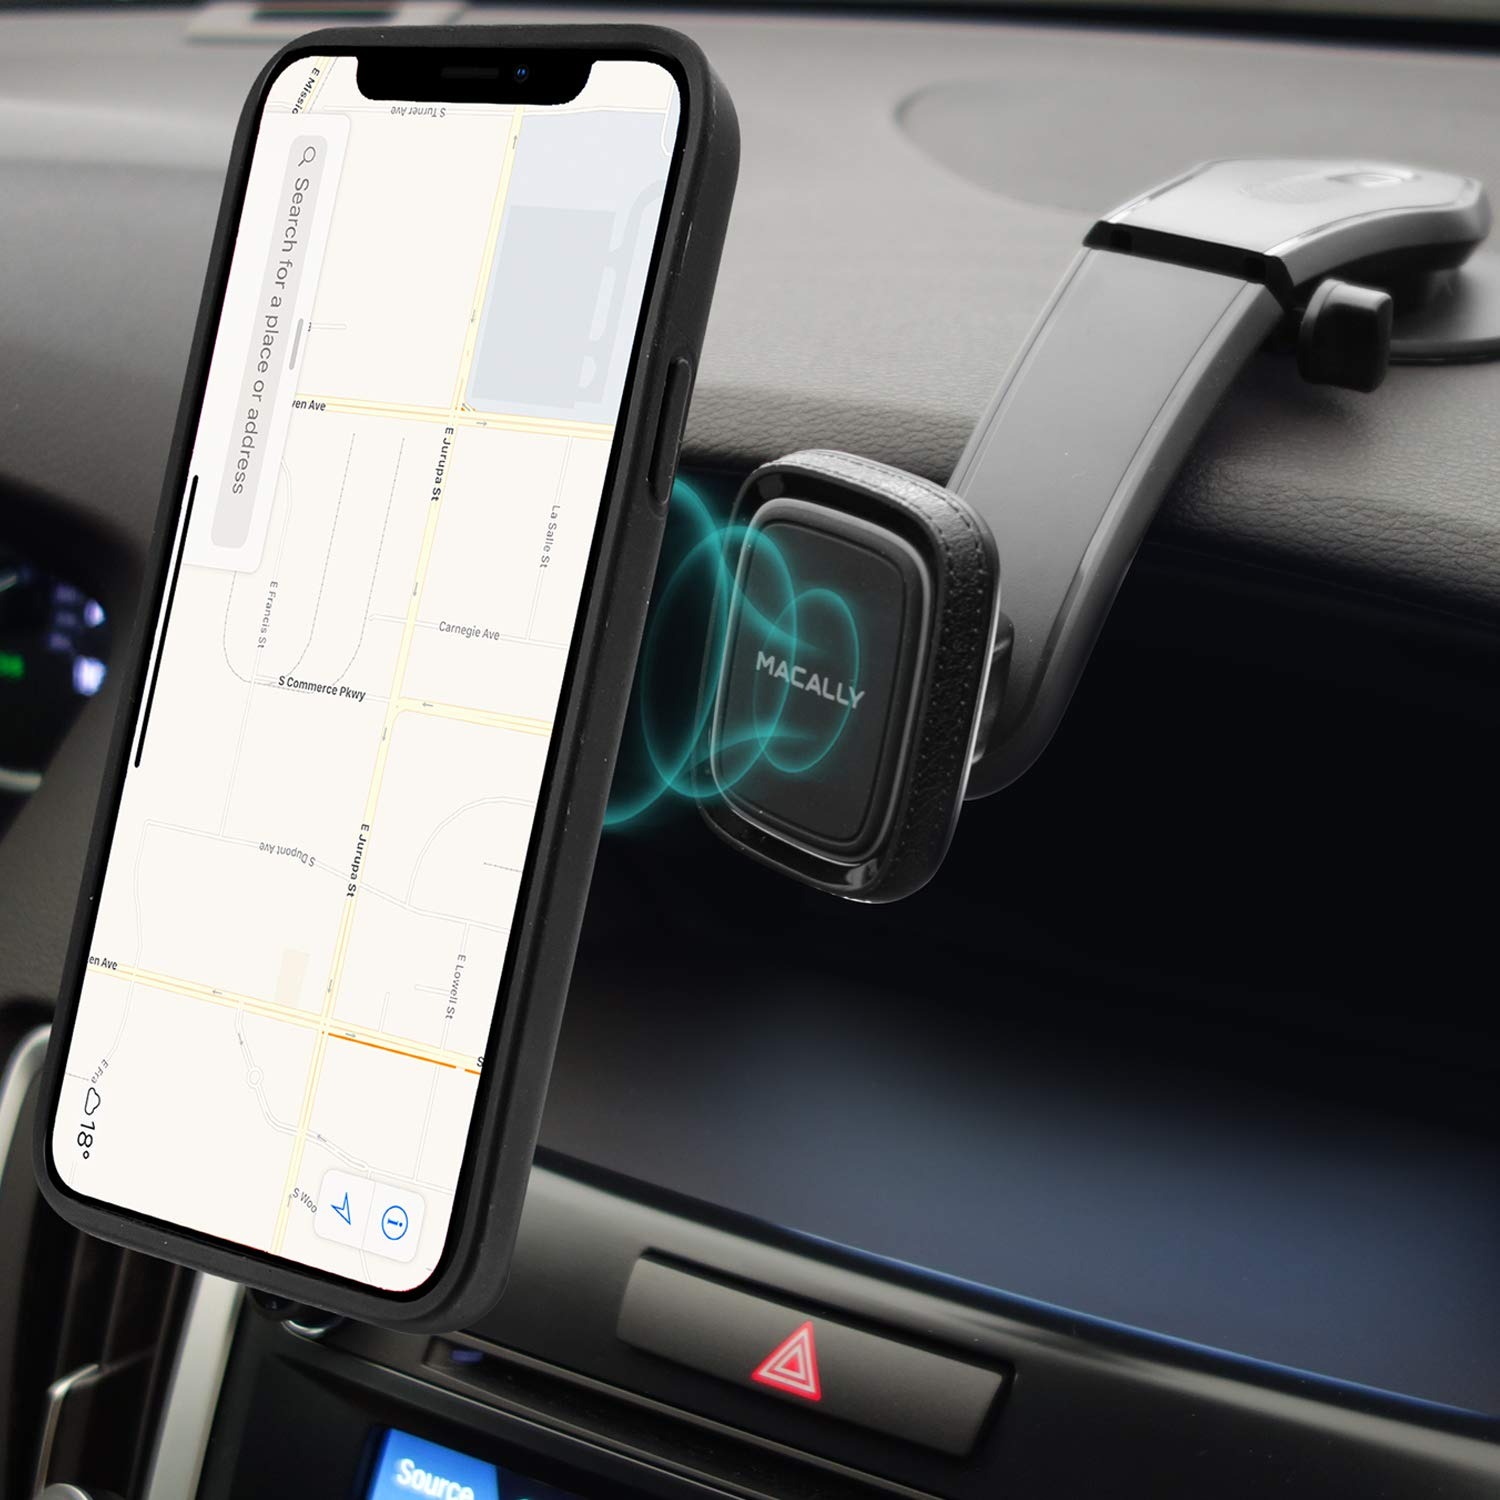 Magnetic Phone Car Mount, Macally Car Phone Mount Holder for Dashboard with Strong Magnet Phone Holder Fits iPhone 11 Pro Xs Max XR X 8 7 6S 6 Plus and Most Smartphones - Black